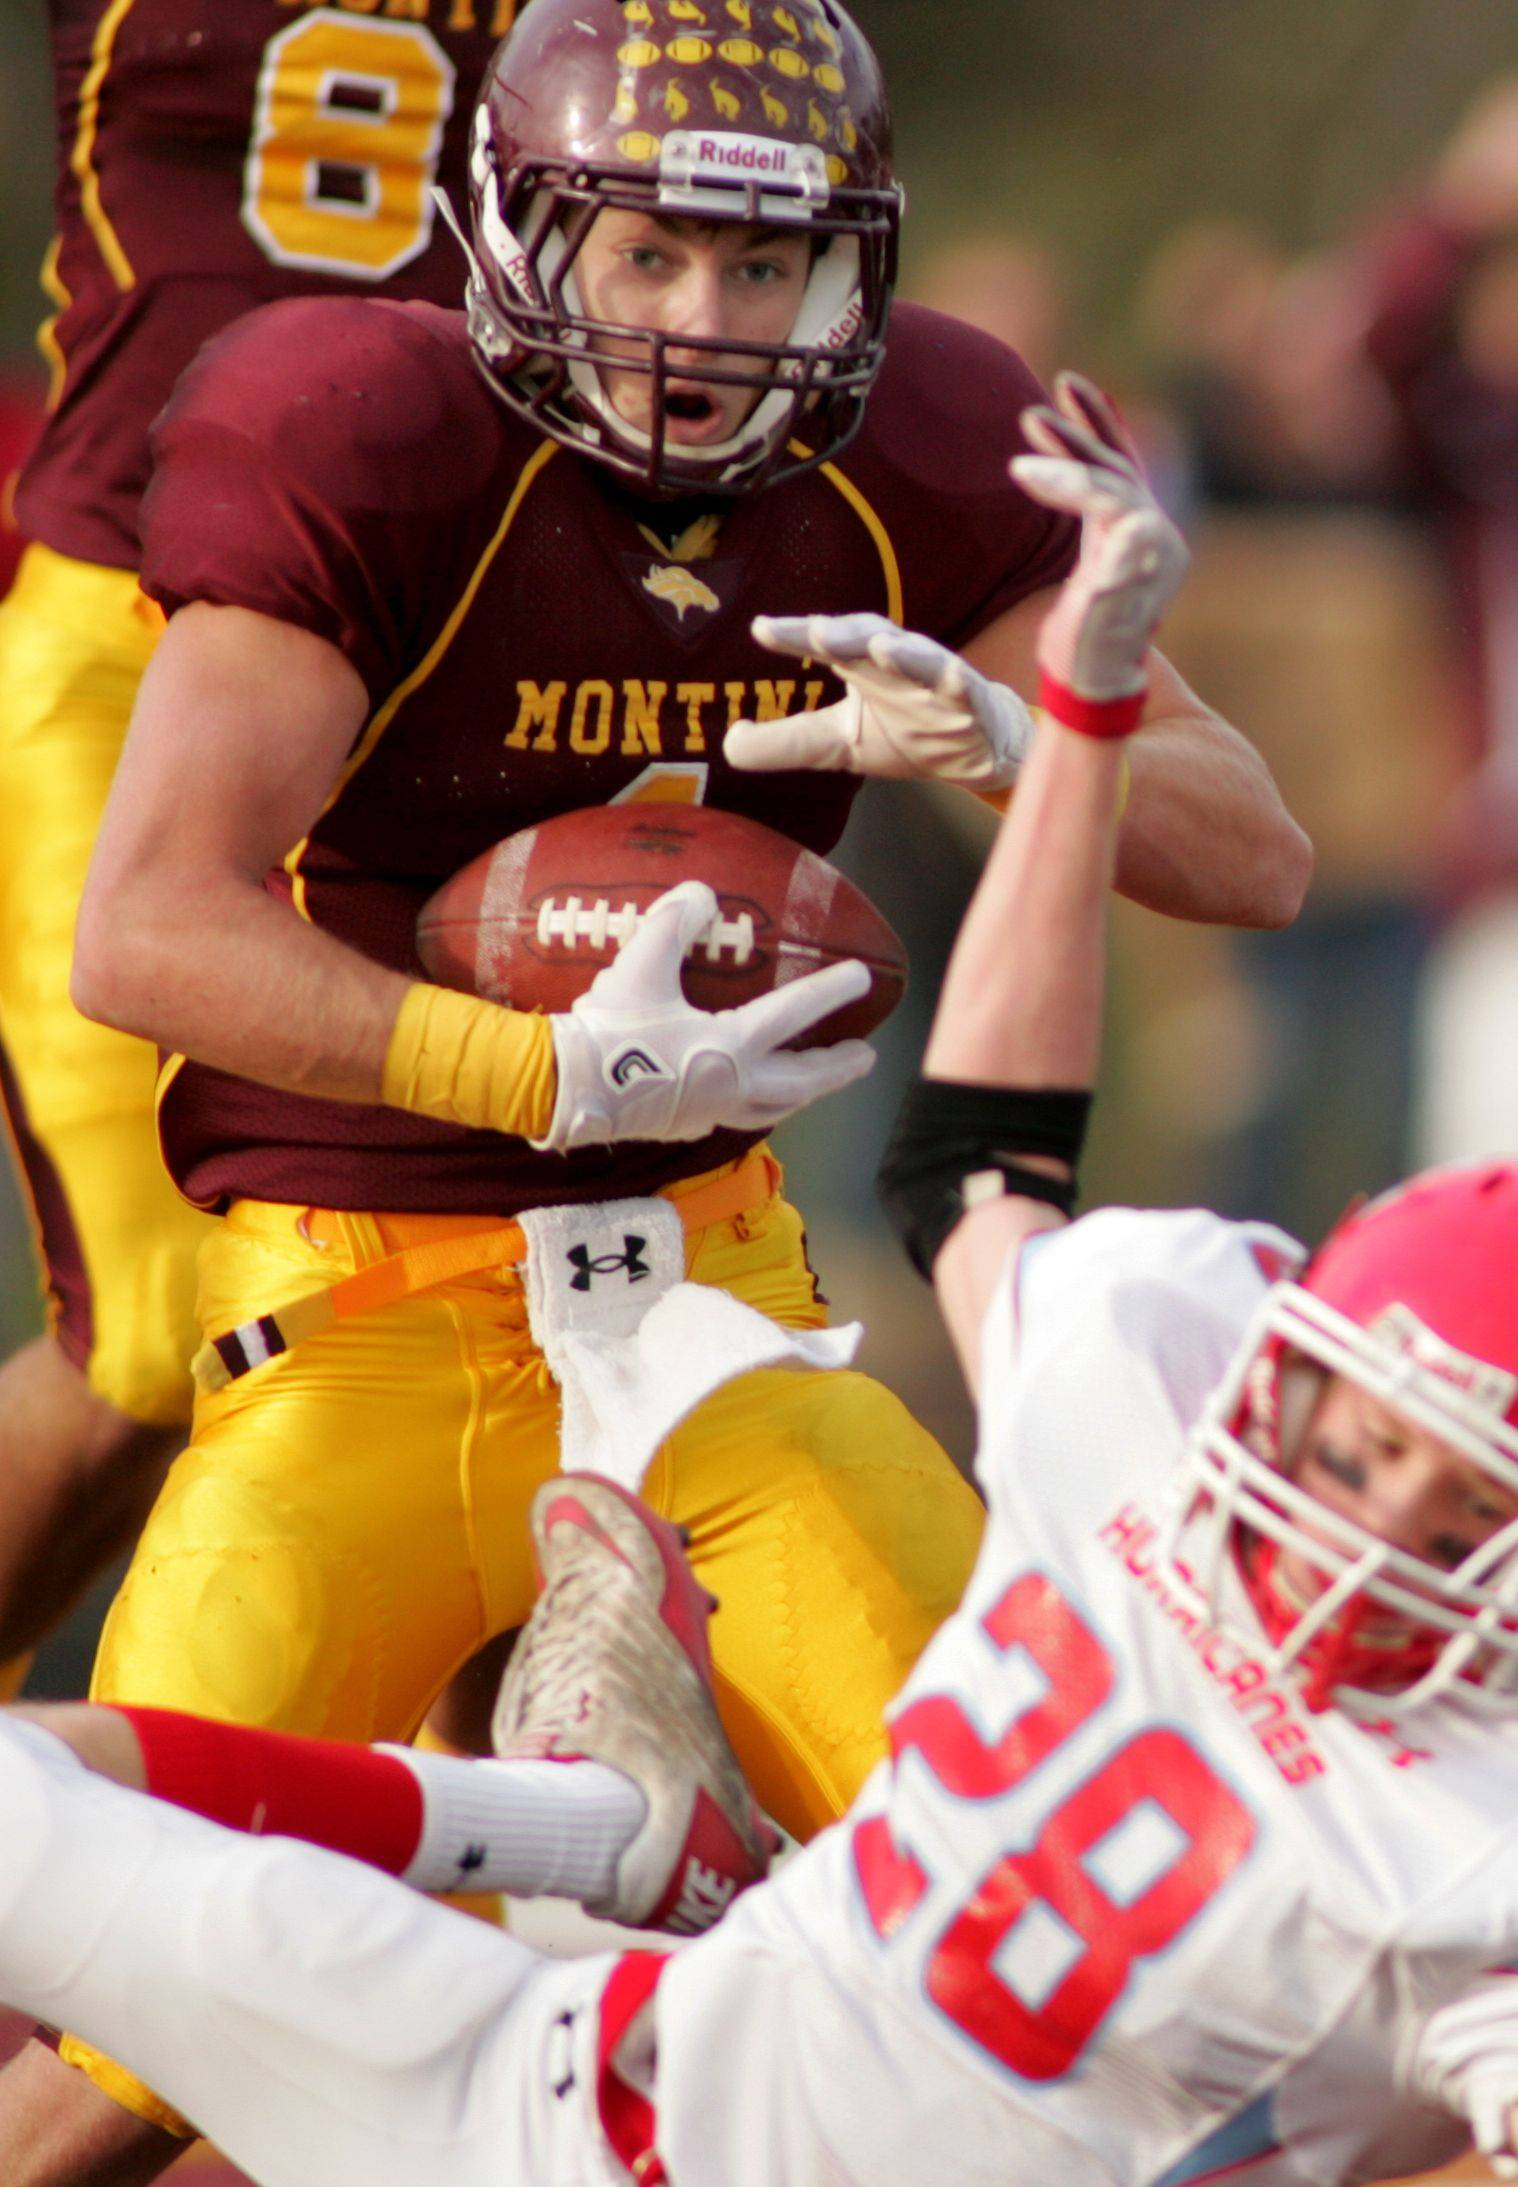 With Rhode, Montini routs Marian Central